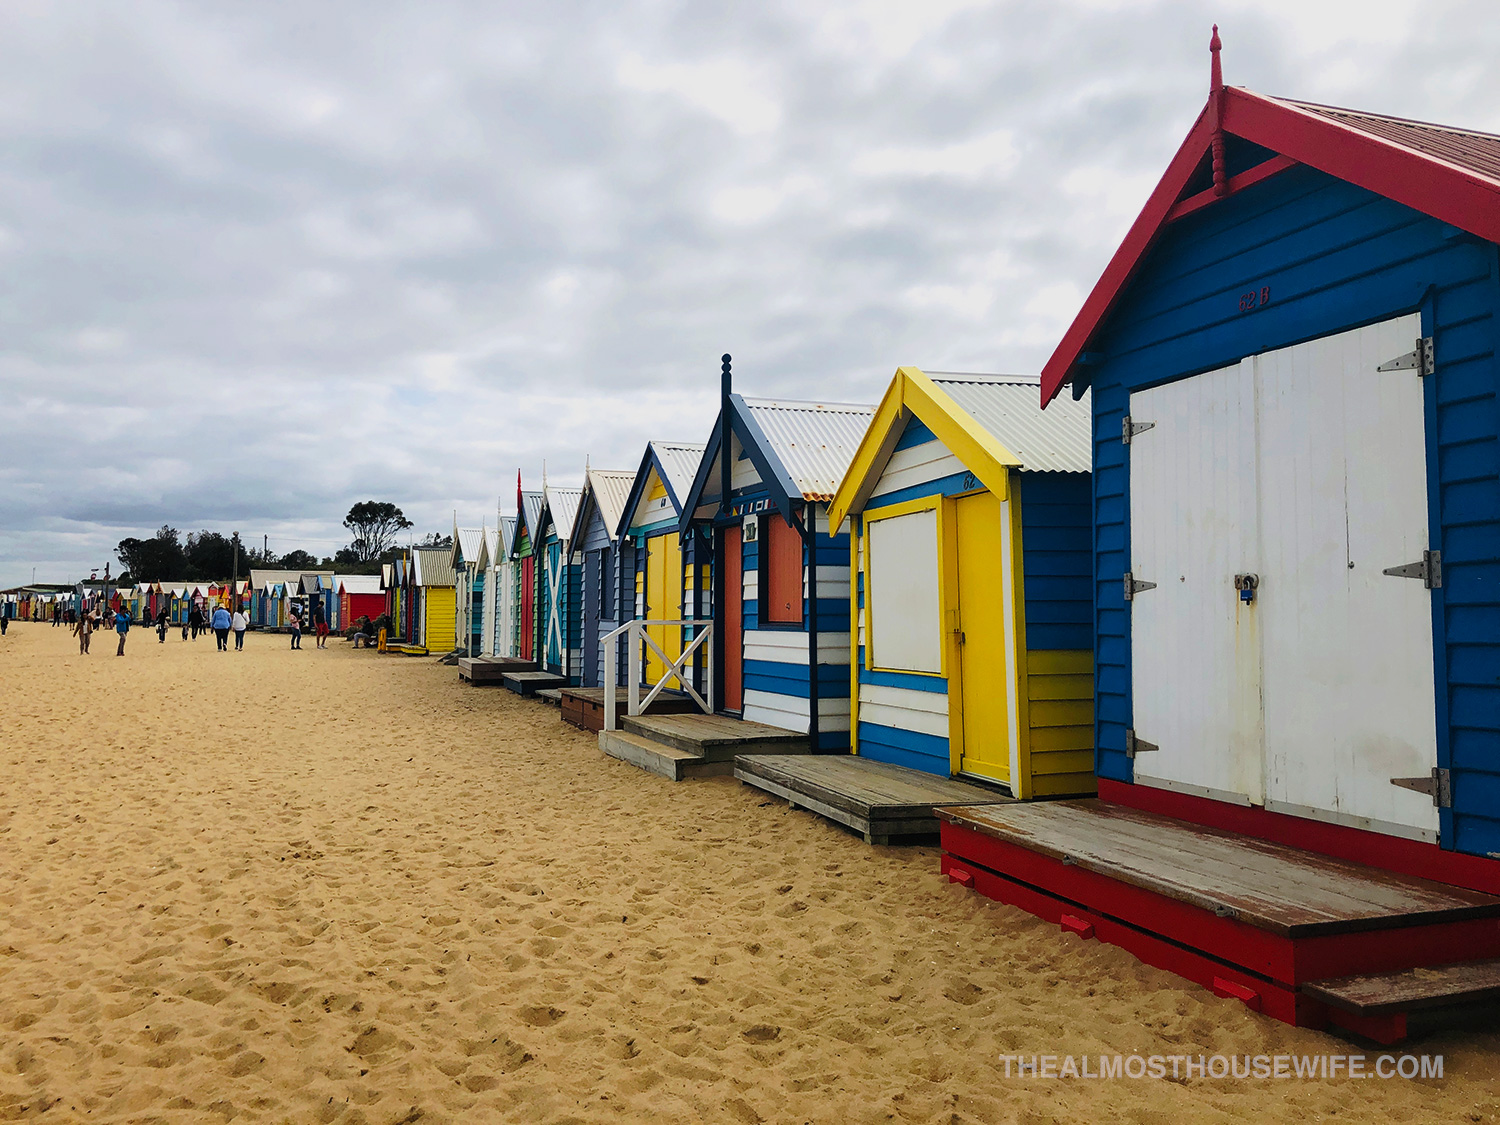 Melbourne – Cold beach strolls and wet city walks in Spring.